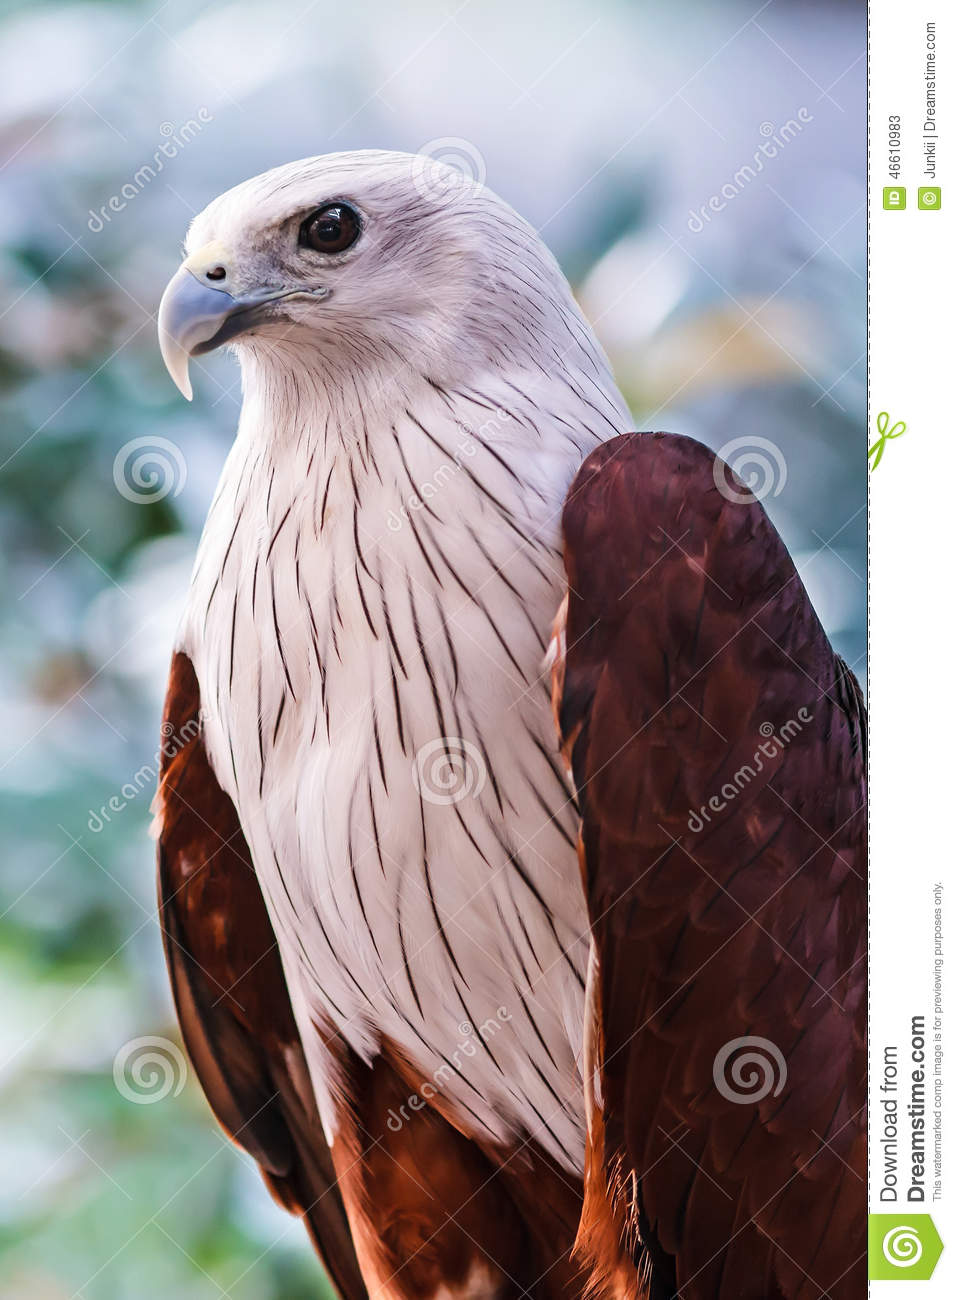 Red-backed sea-eagle clipart #1